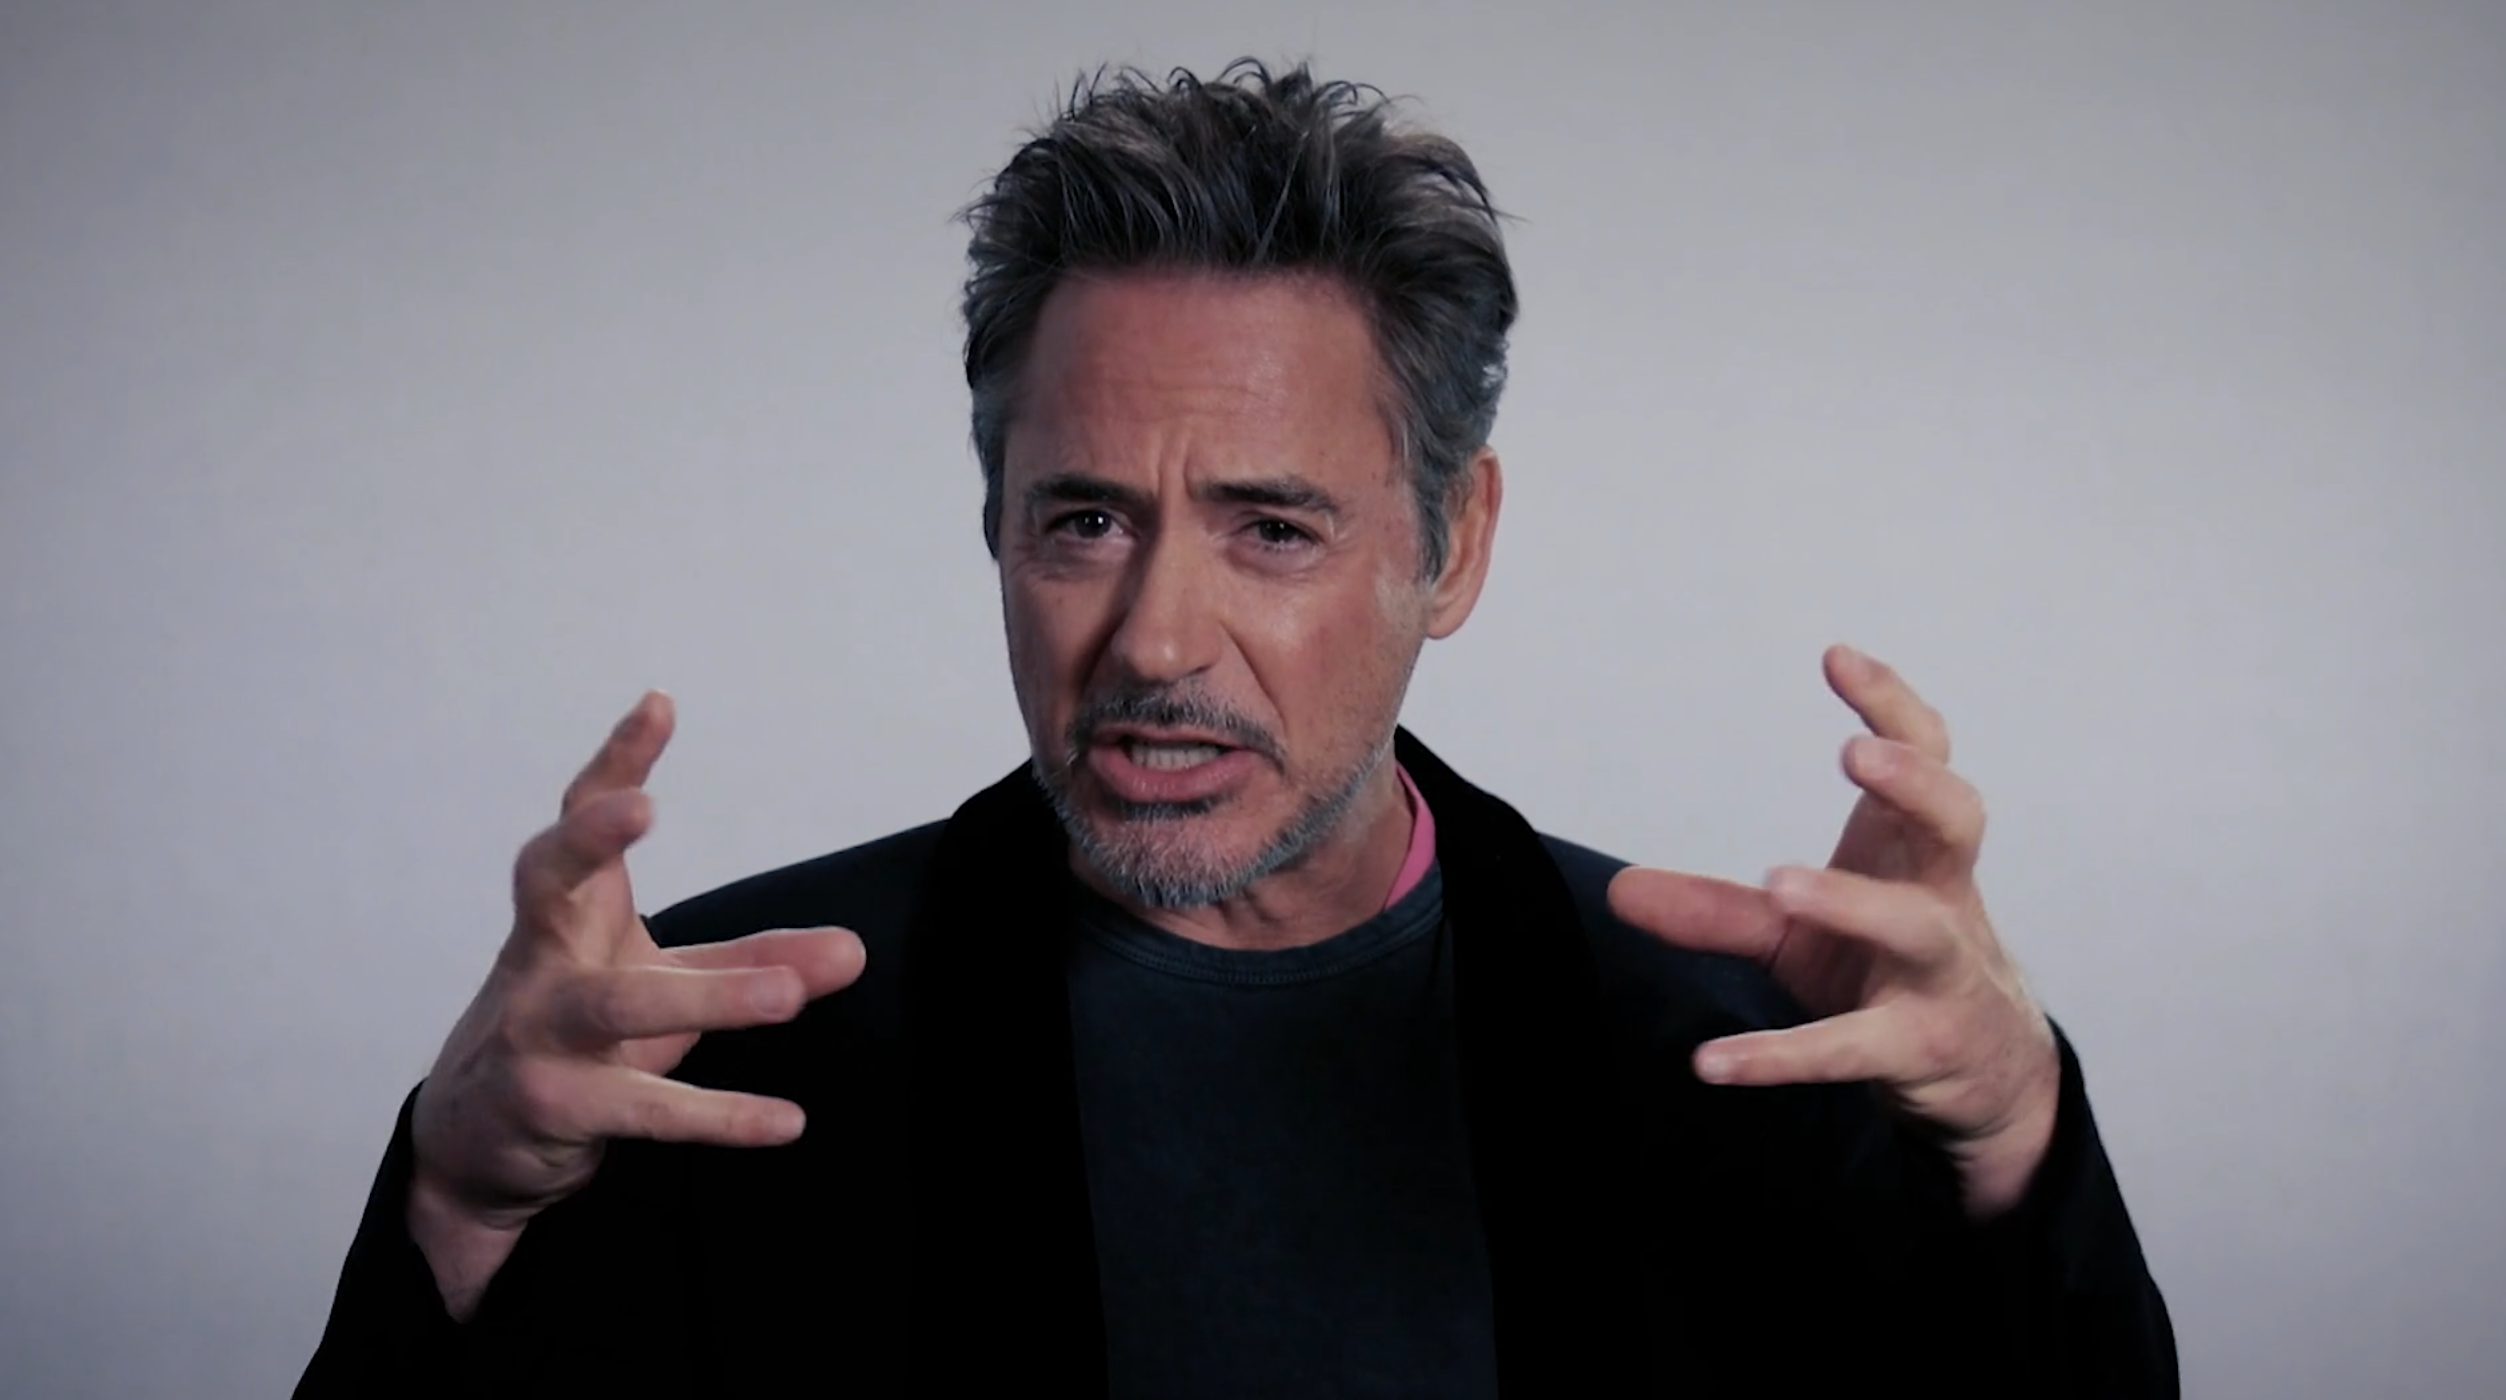 Robert Downey Jr speaks about FootPrint Coalition